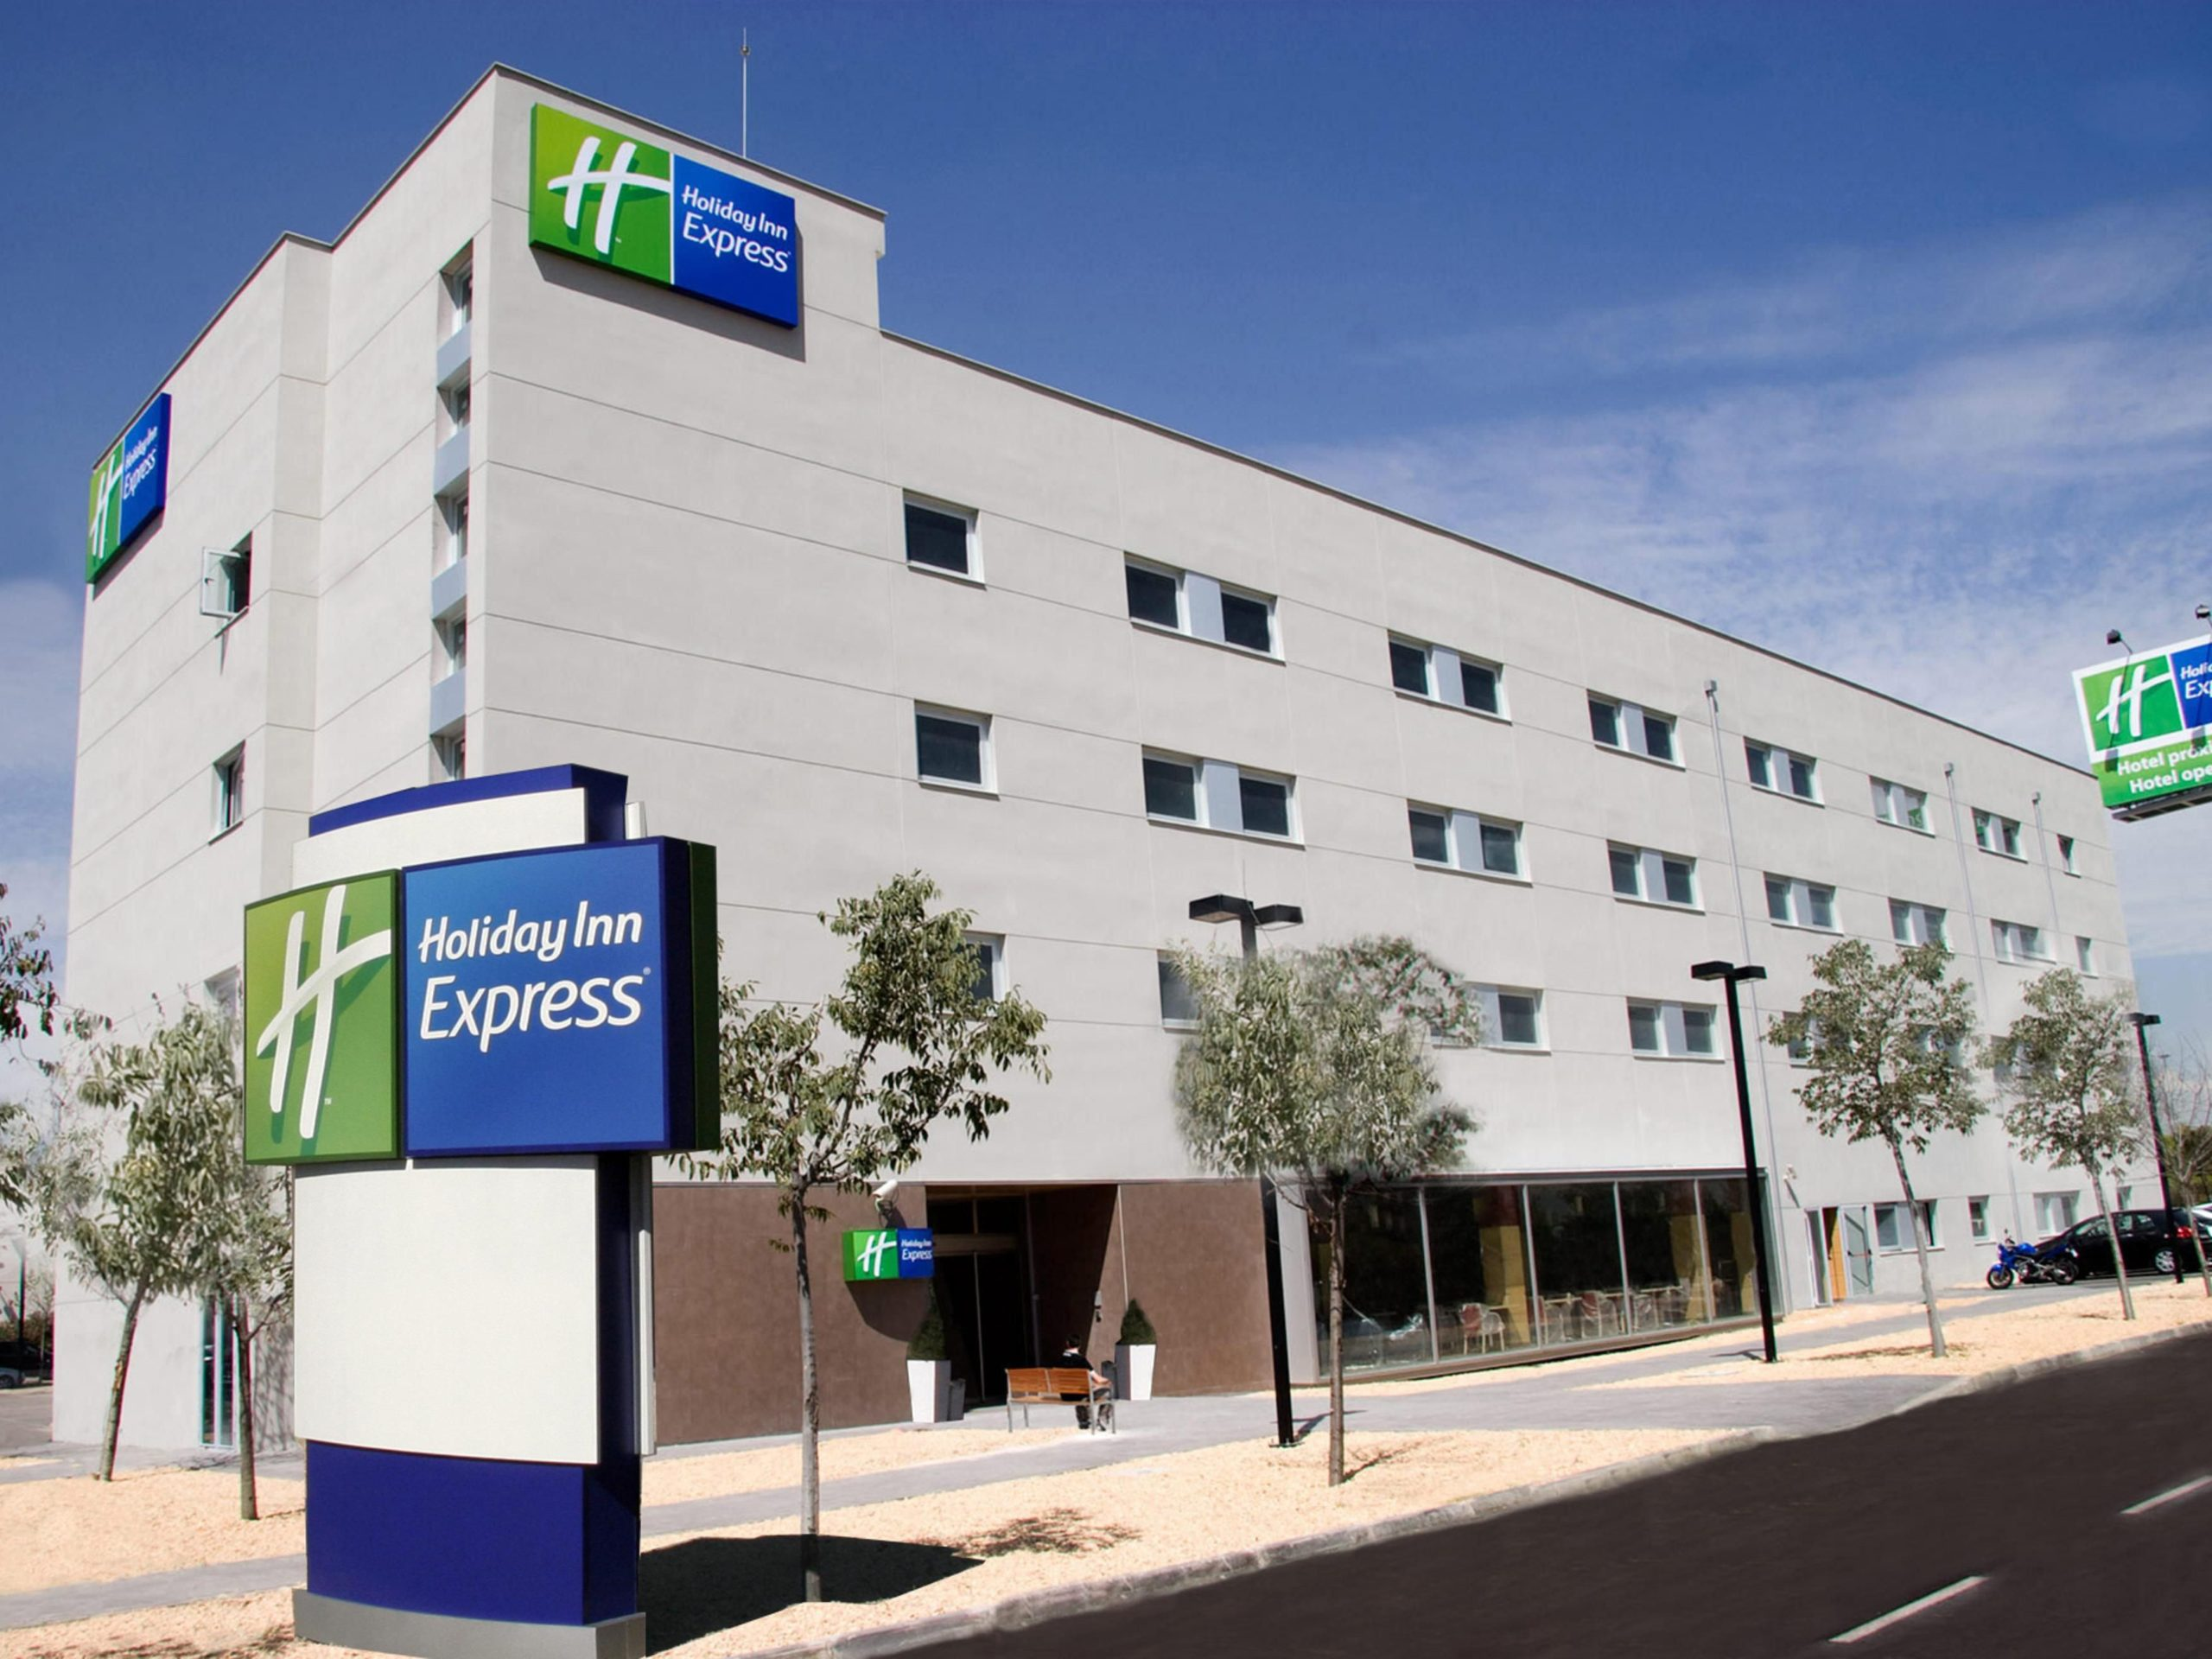 Holiday Inn Express - Spain